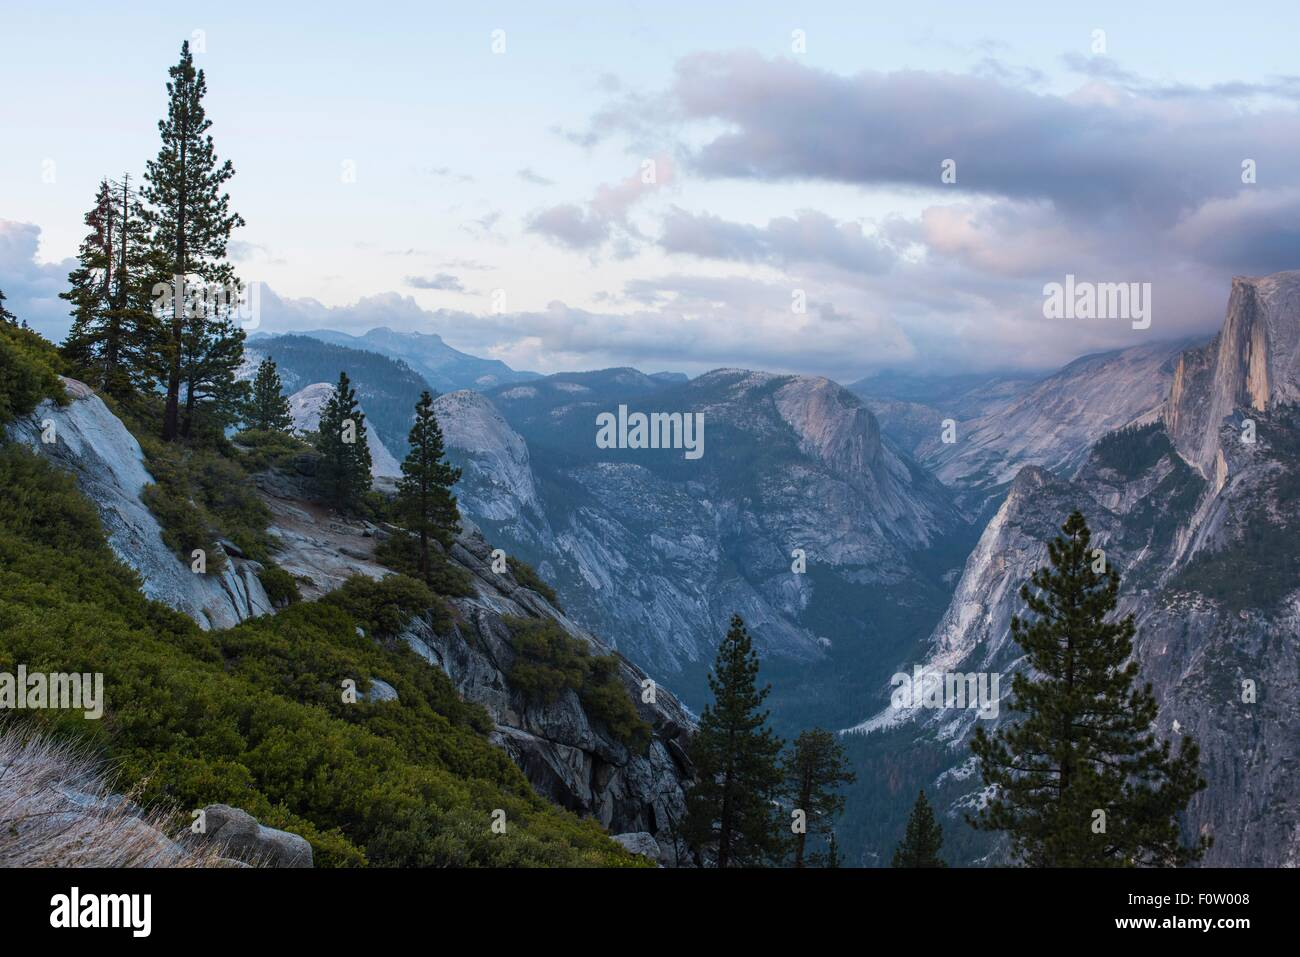 Elevated view of mountain peaks, Yosemite National Park, California, USA - Stock Image